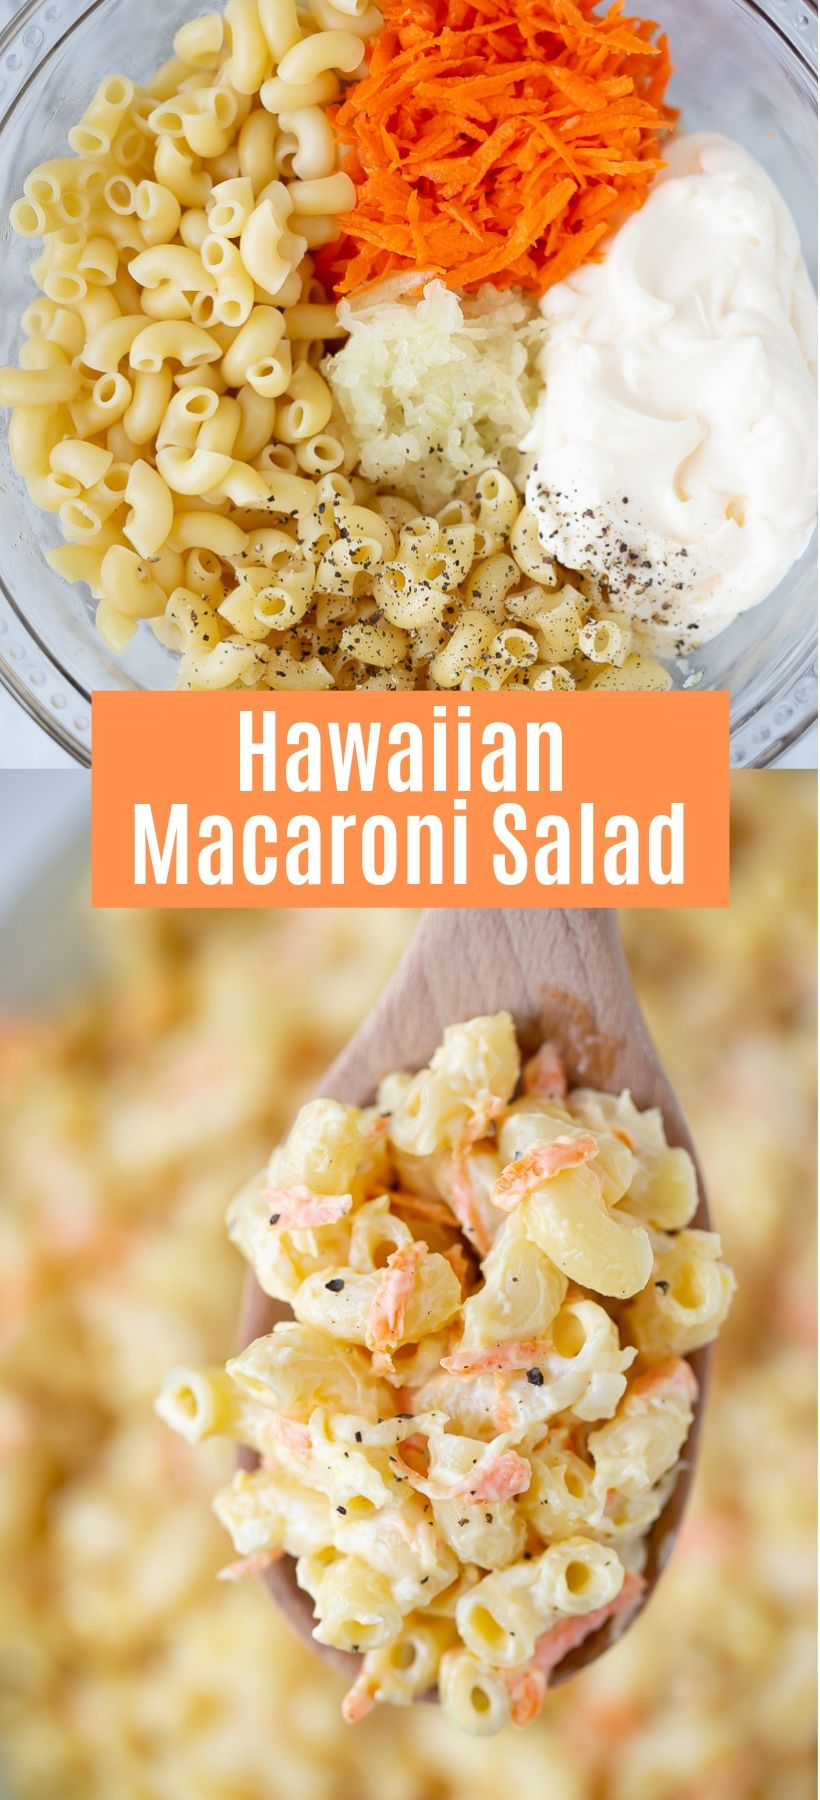 World's Best Hawaiian Macaroni Salad